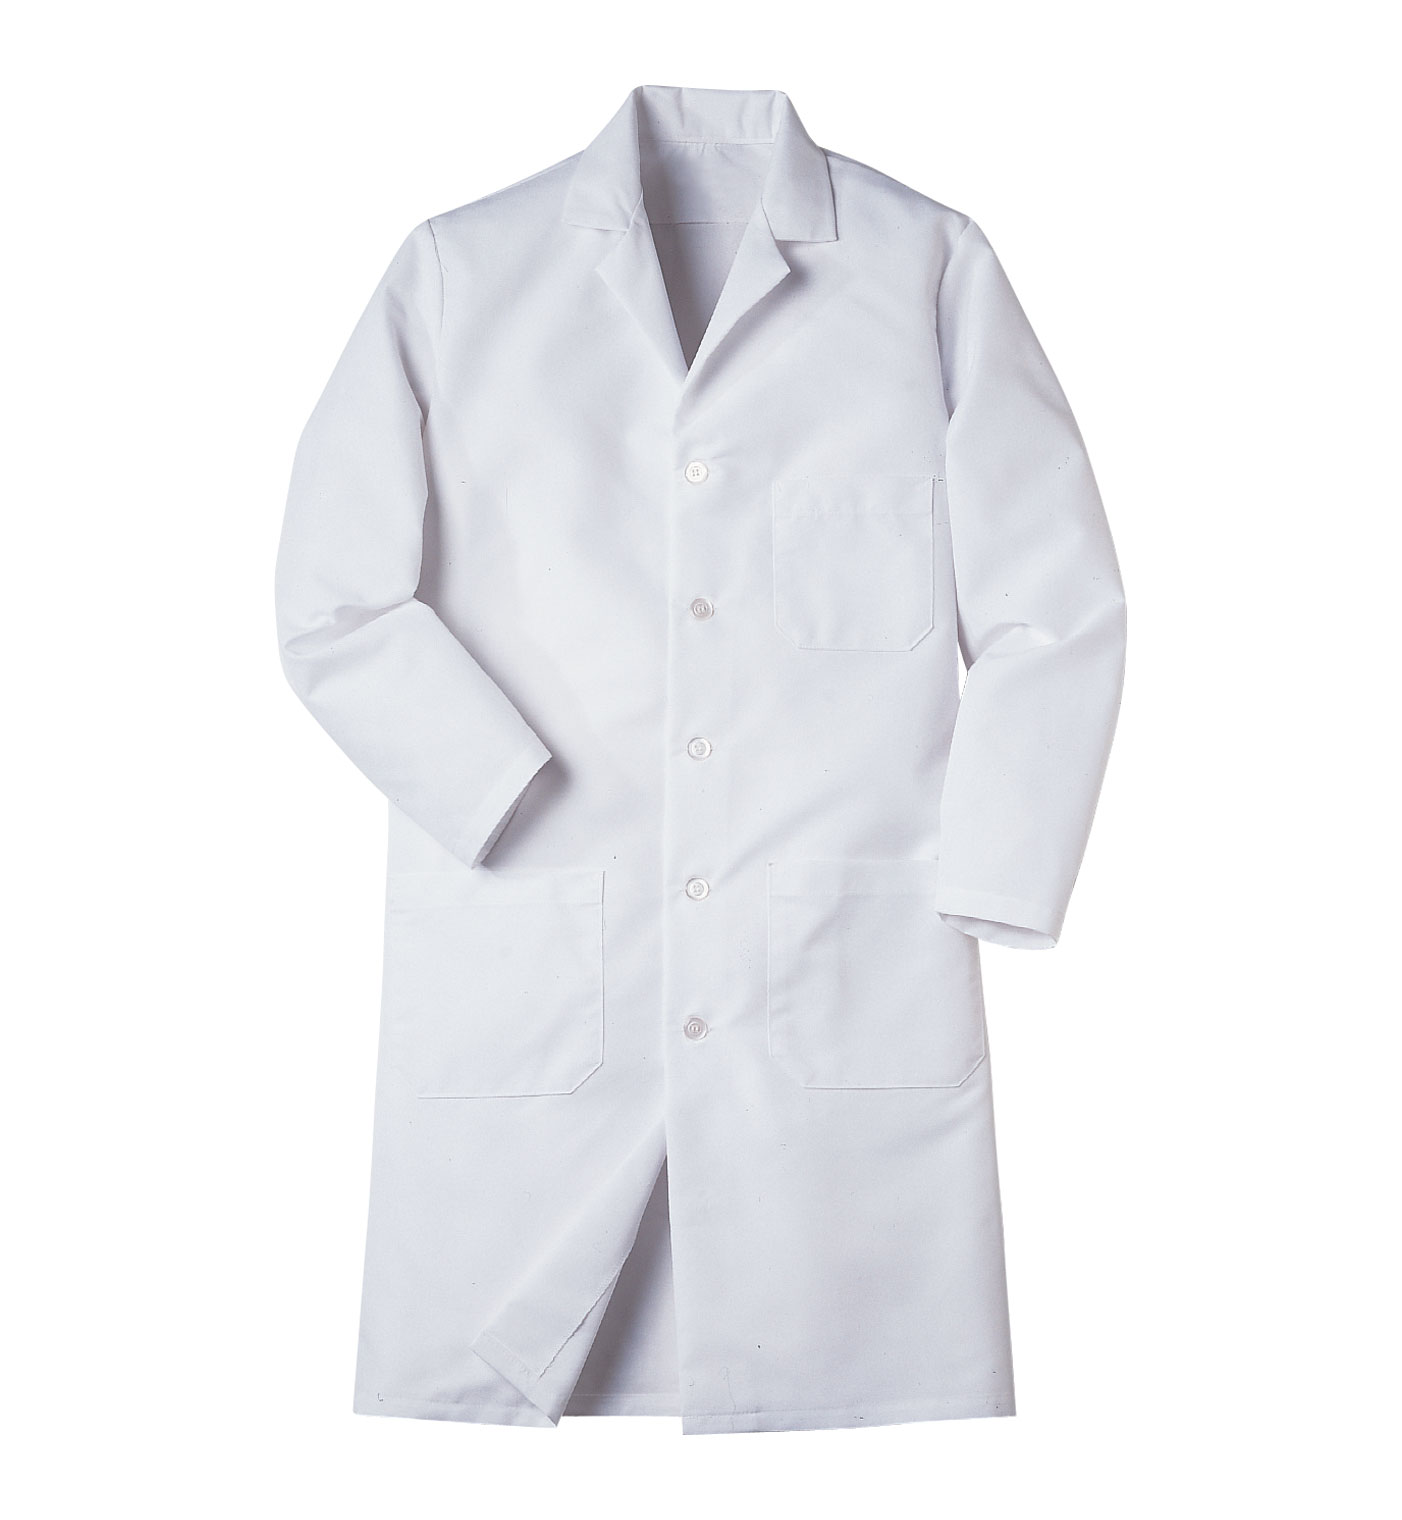 Aramark Mens Button-Front Lab Coat | Aramark Uniform Services